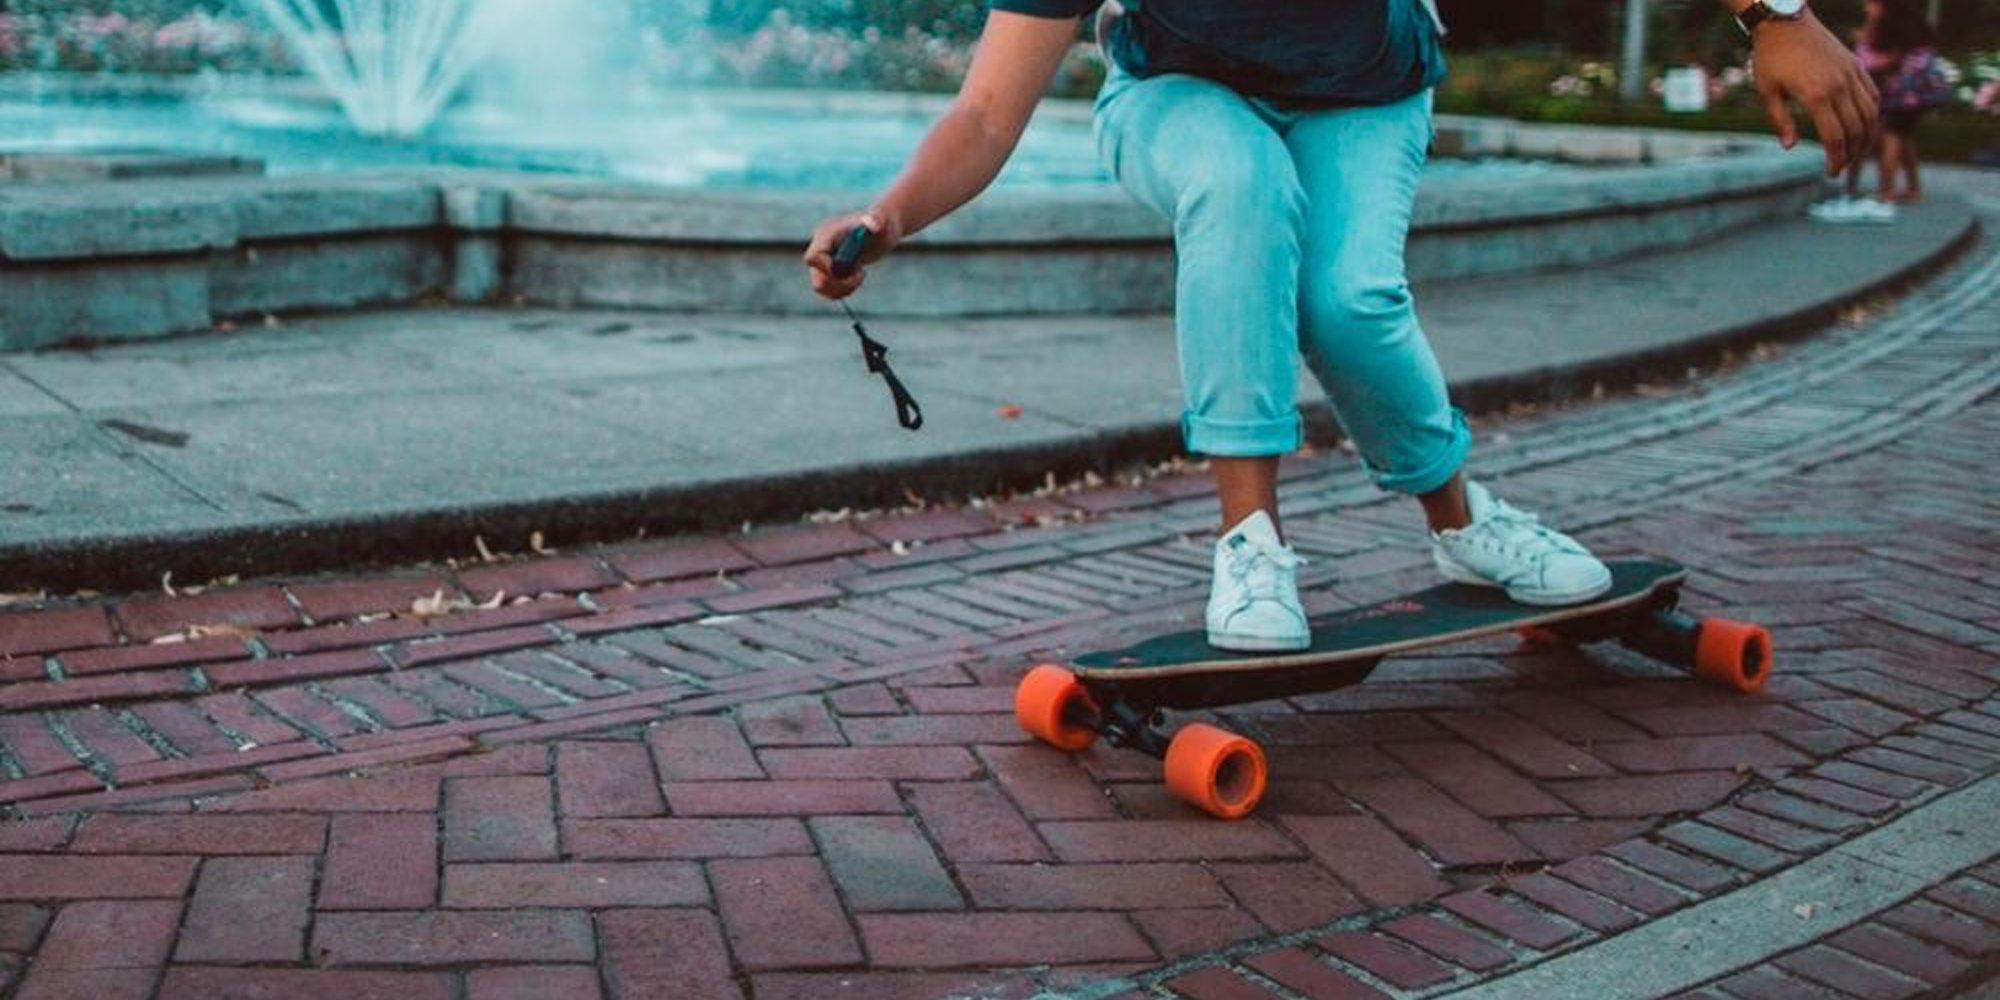 Hit 22 mph speeds w\/ Boosted Board\u002639;s 2nd Gen. Electric Skateboard: $1,000 $300 off  9to5Toys